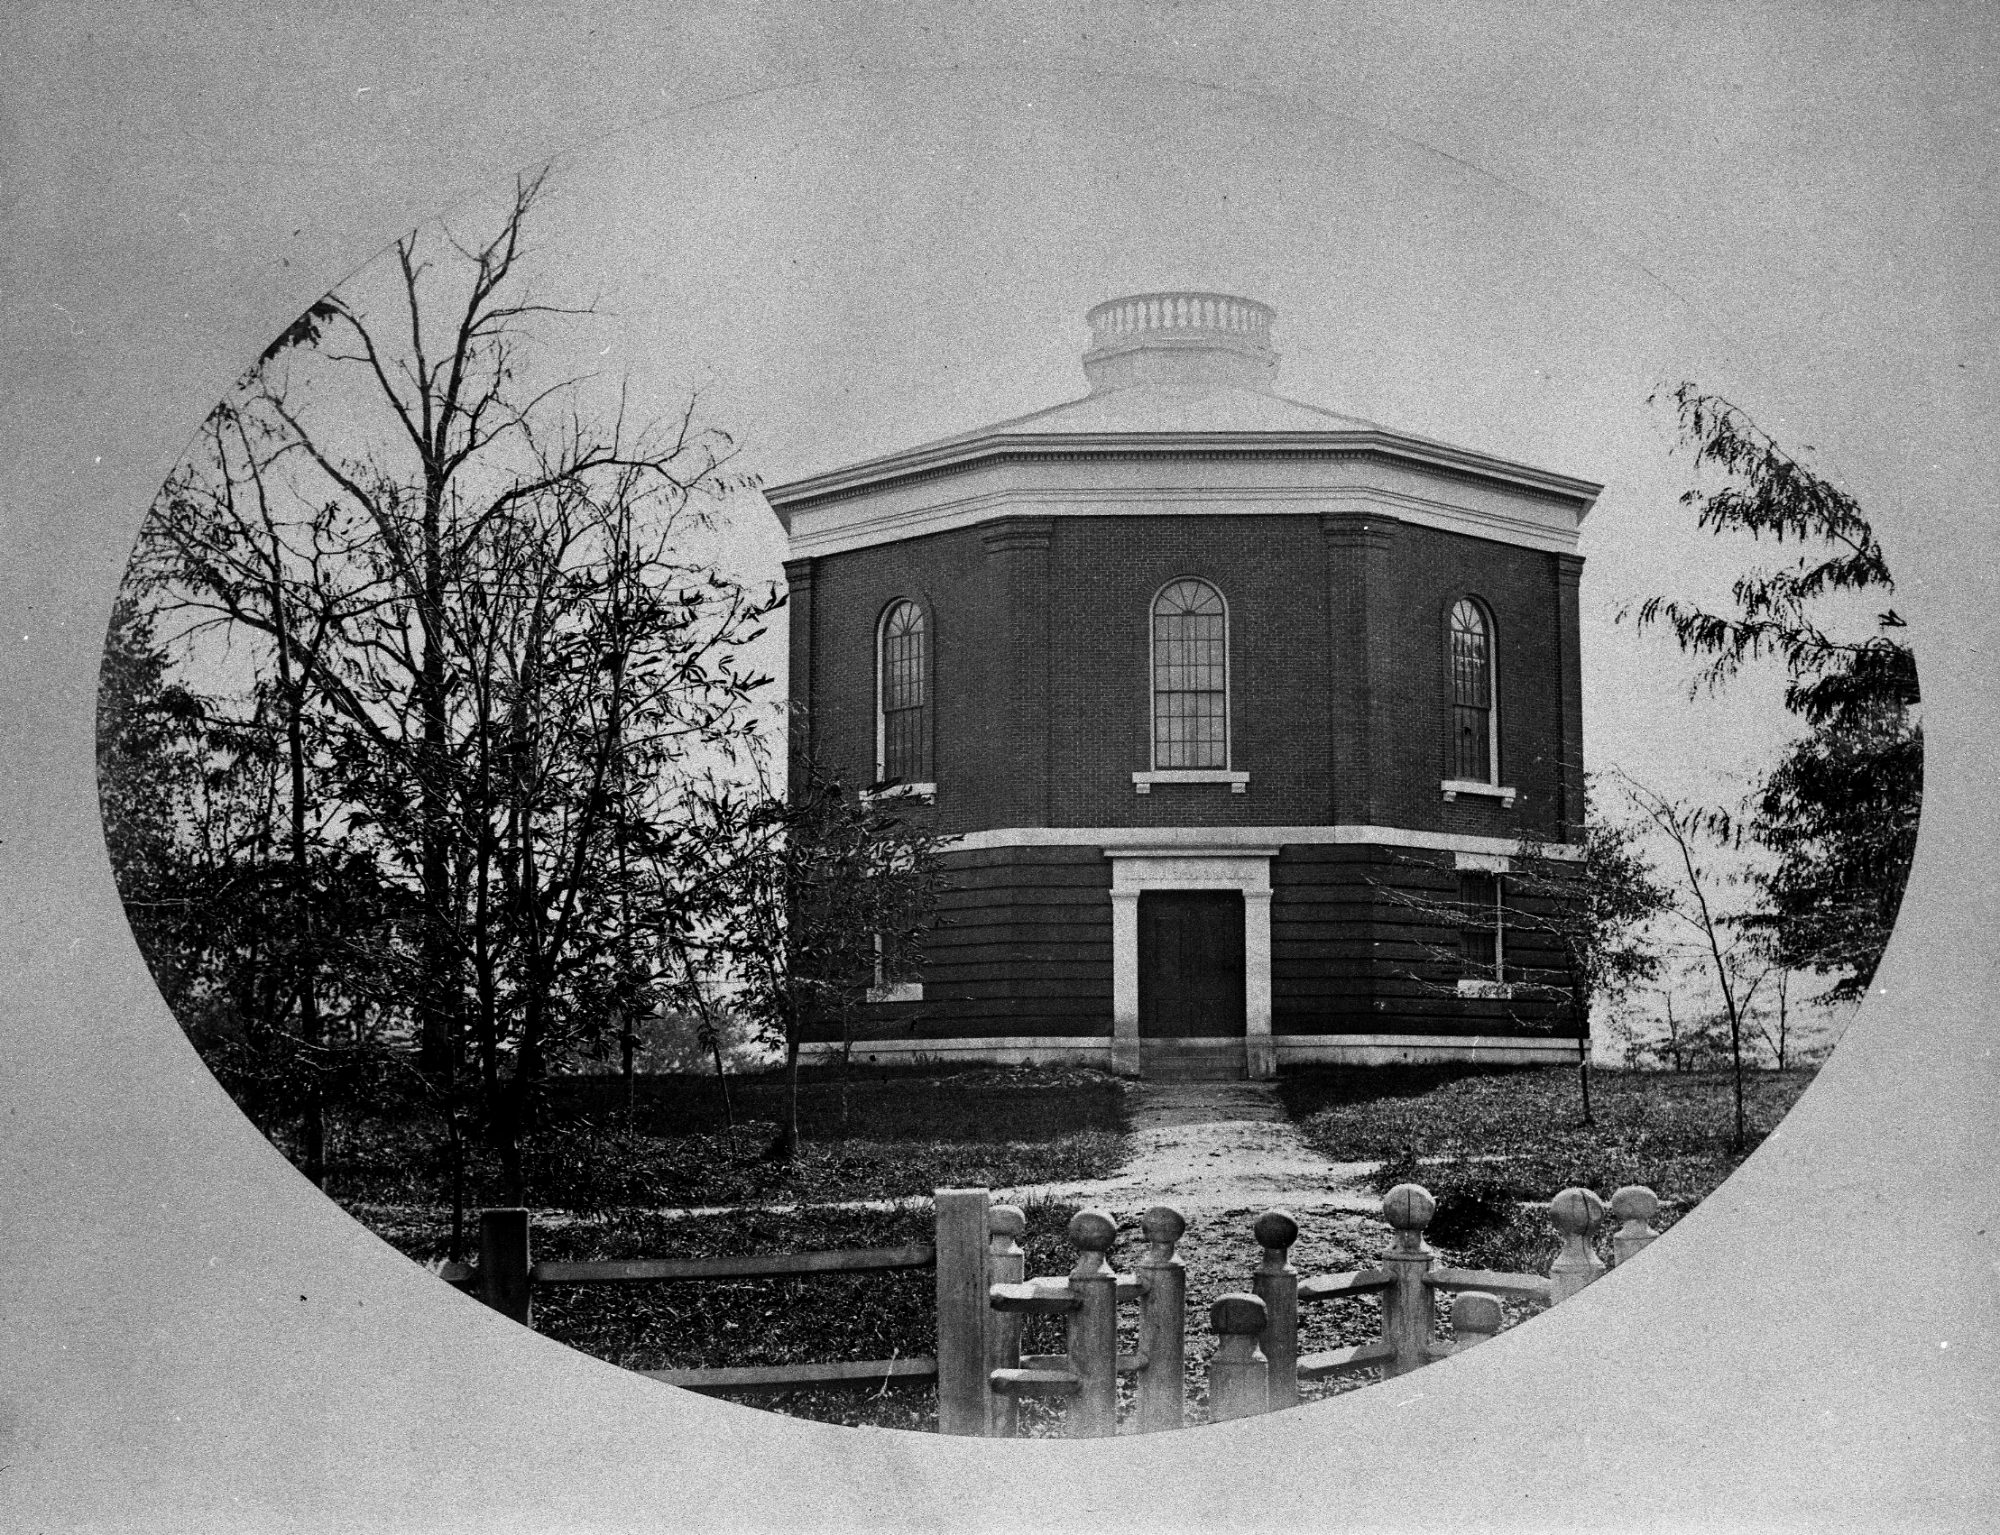 View of Lawrence Hall from 1846.